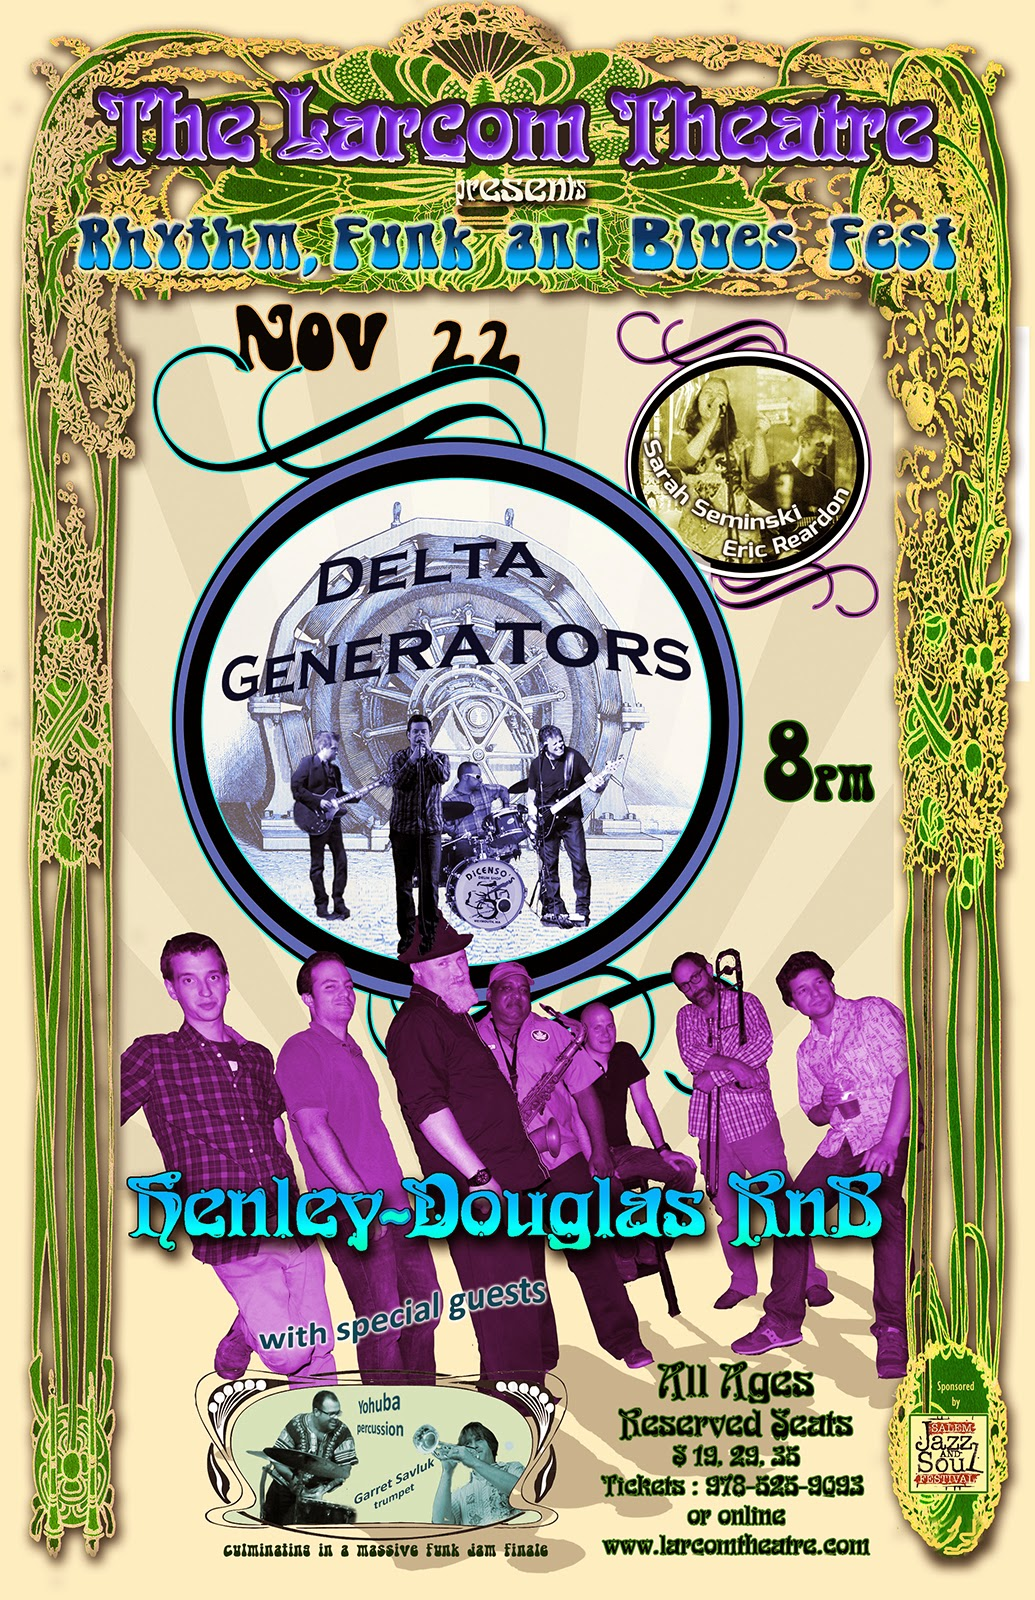 Delta Generators, Henley Douglas, Sarah Seminski, Big Ol' Dirty Bucke,t Yahuba Torres, Ryan Montbleau Band,Garret Savluk, The Boston Horns